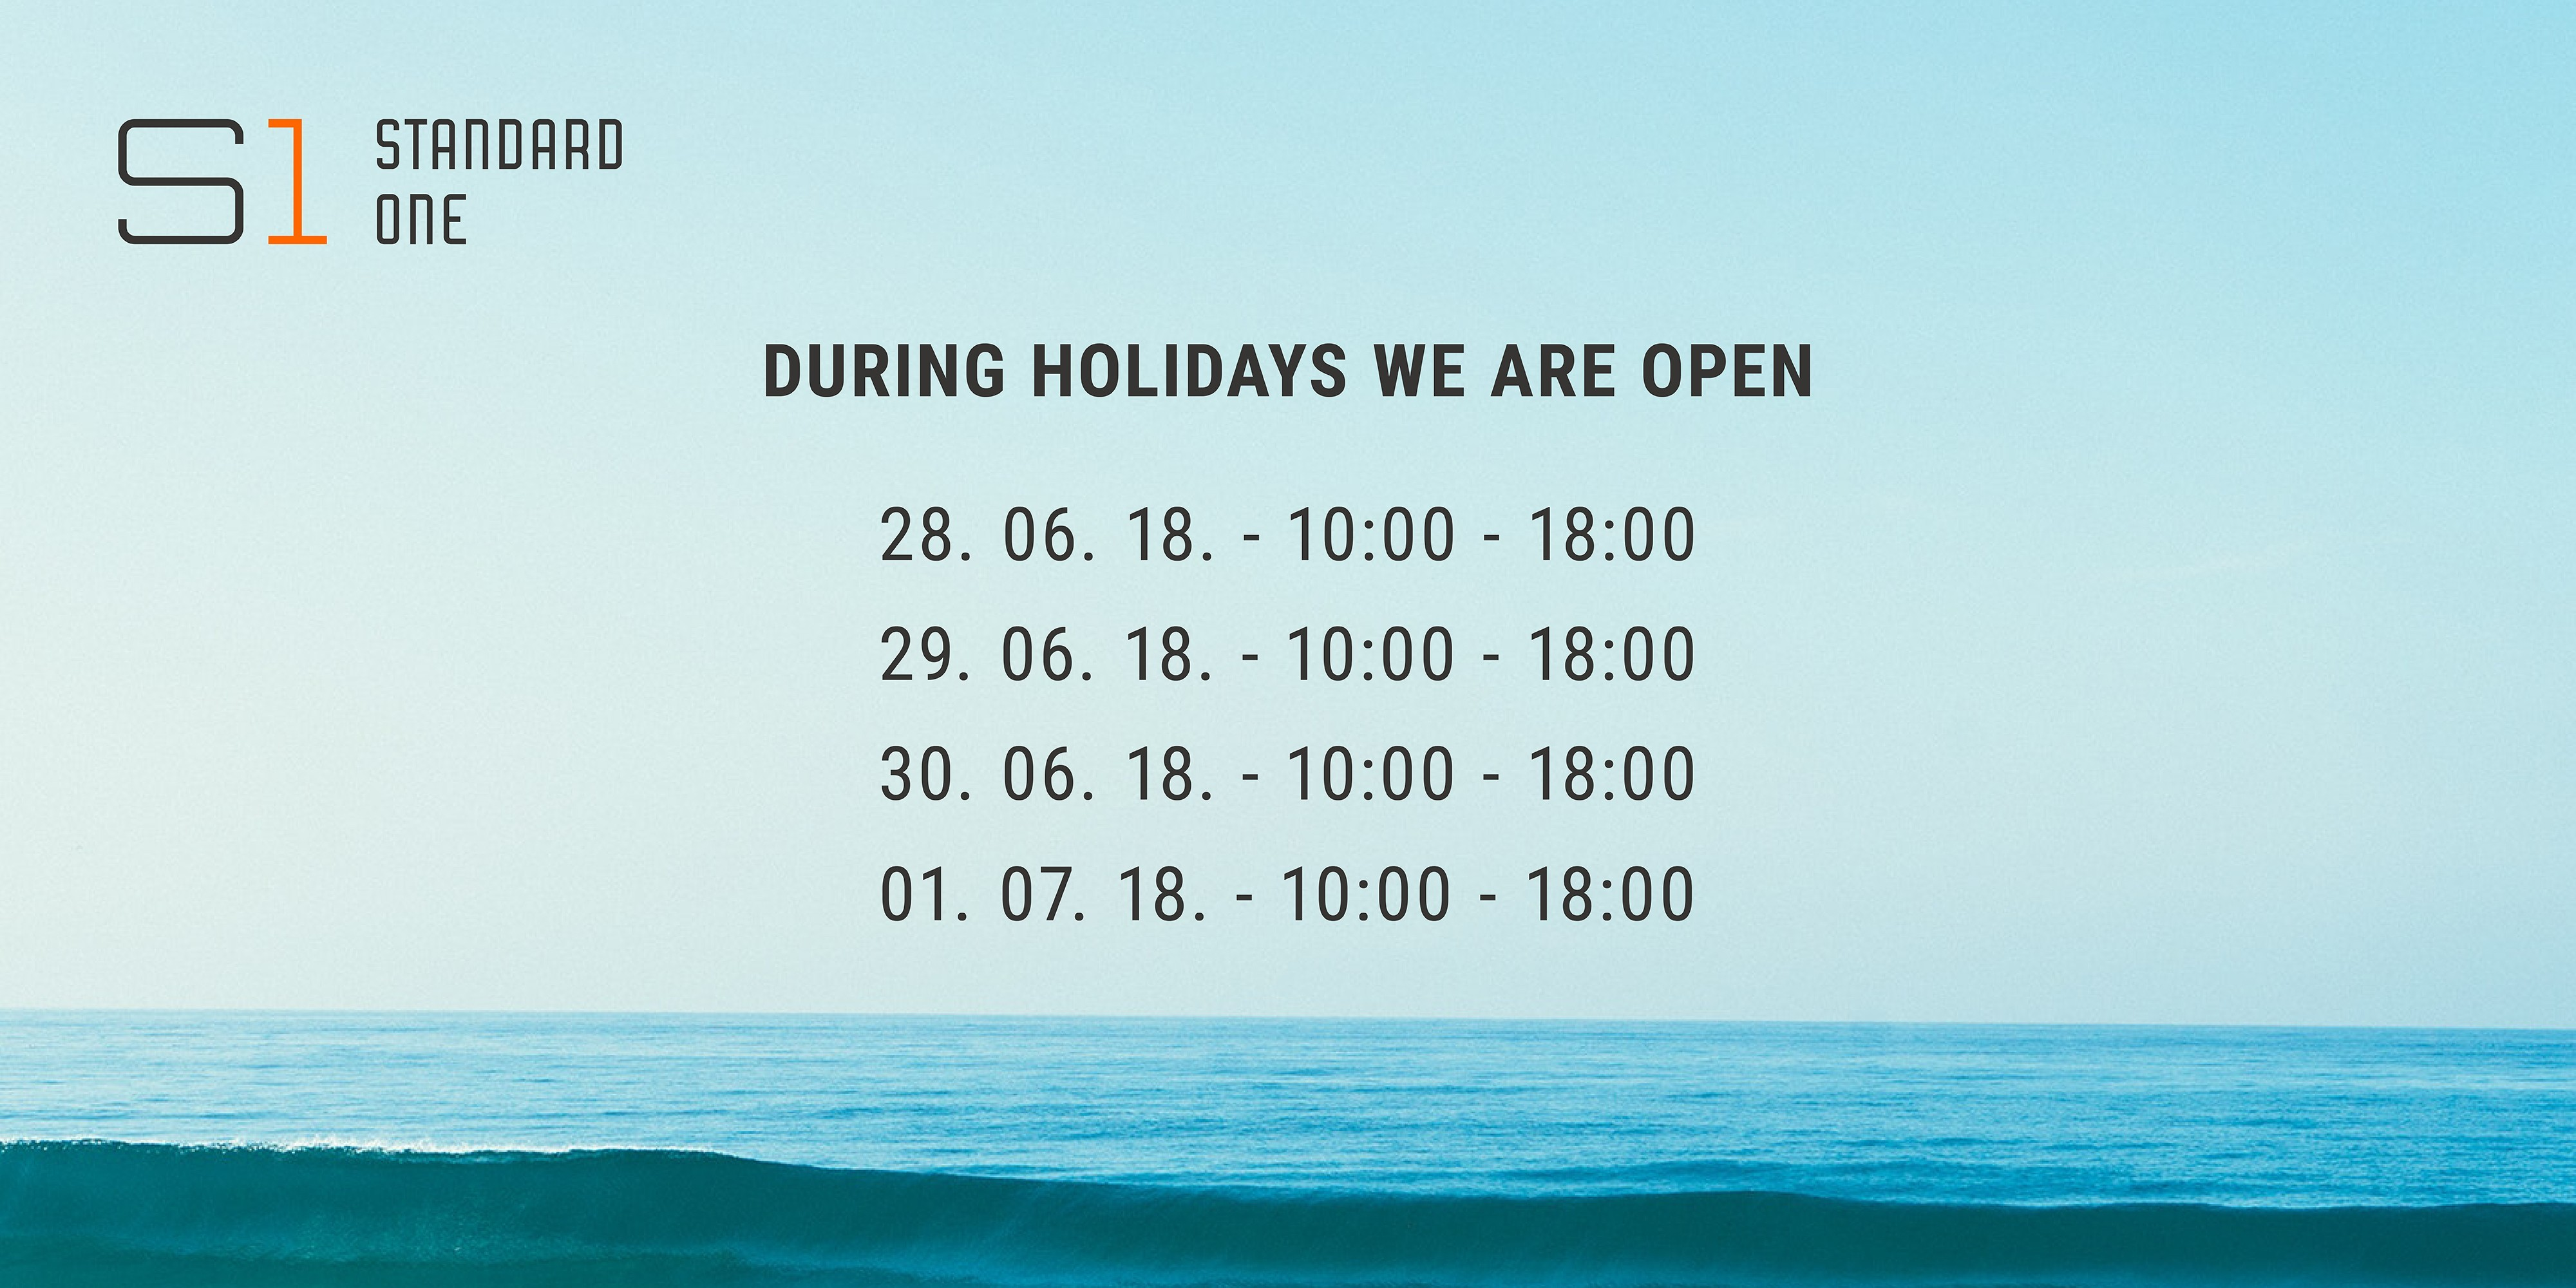 During holidays we are open